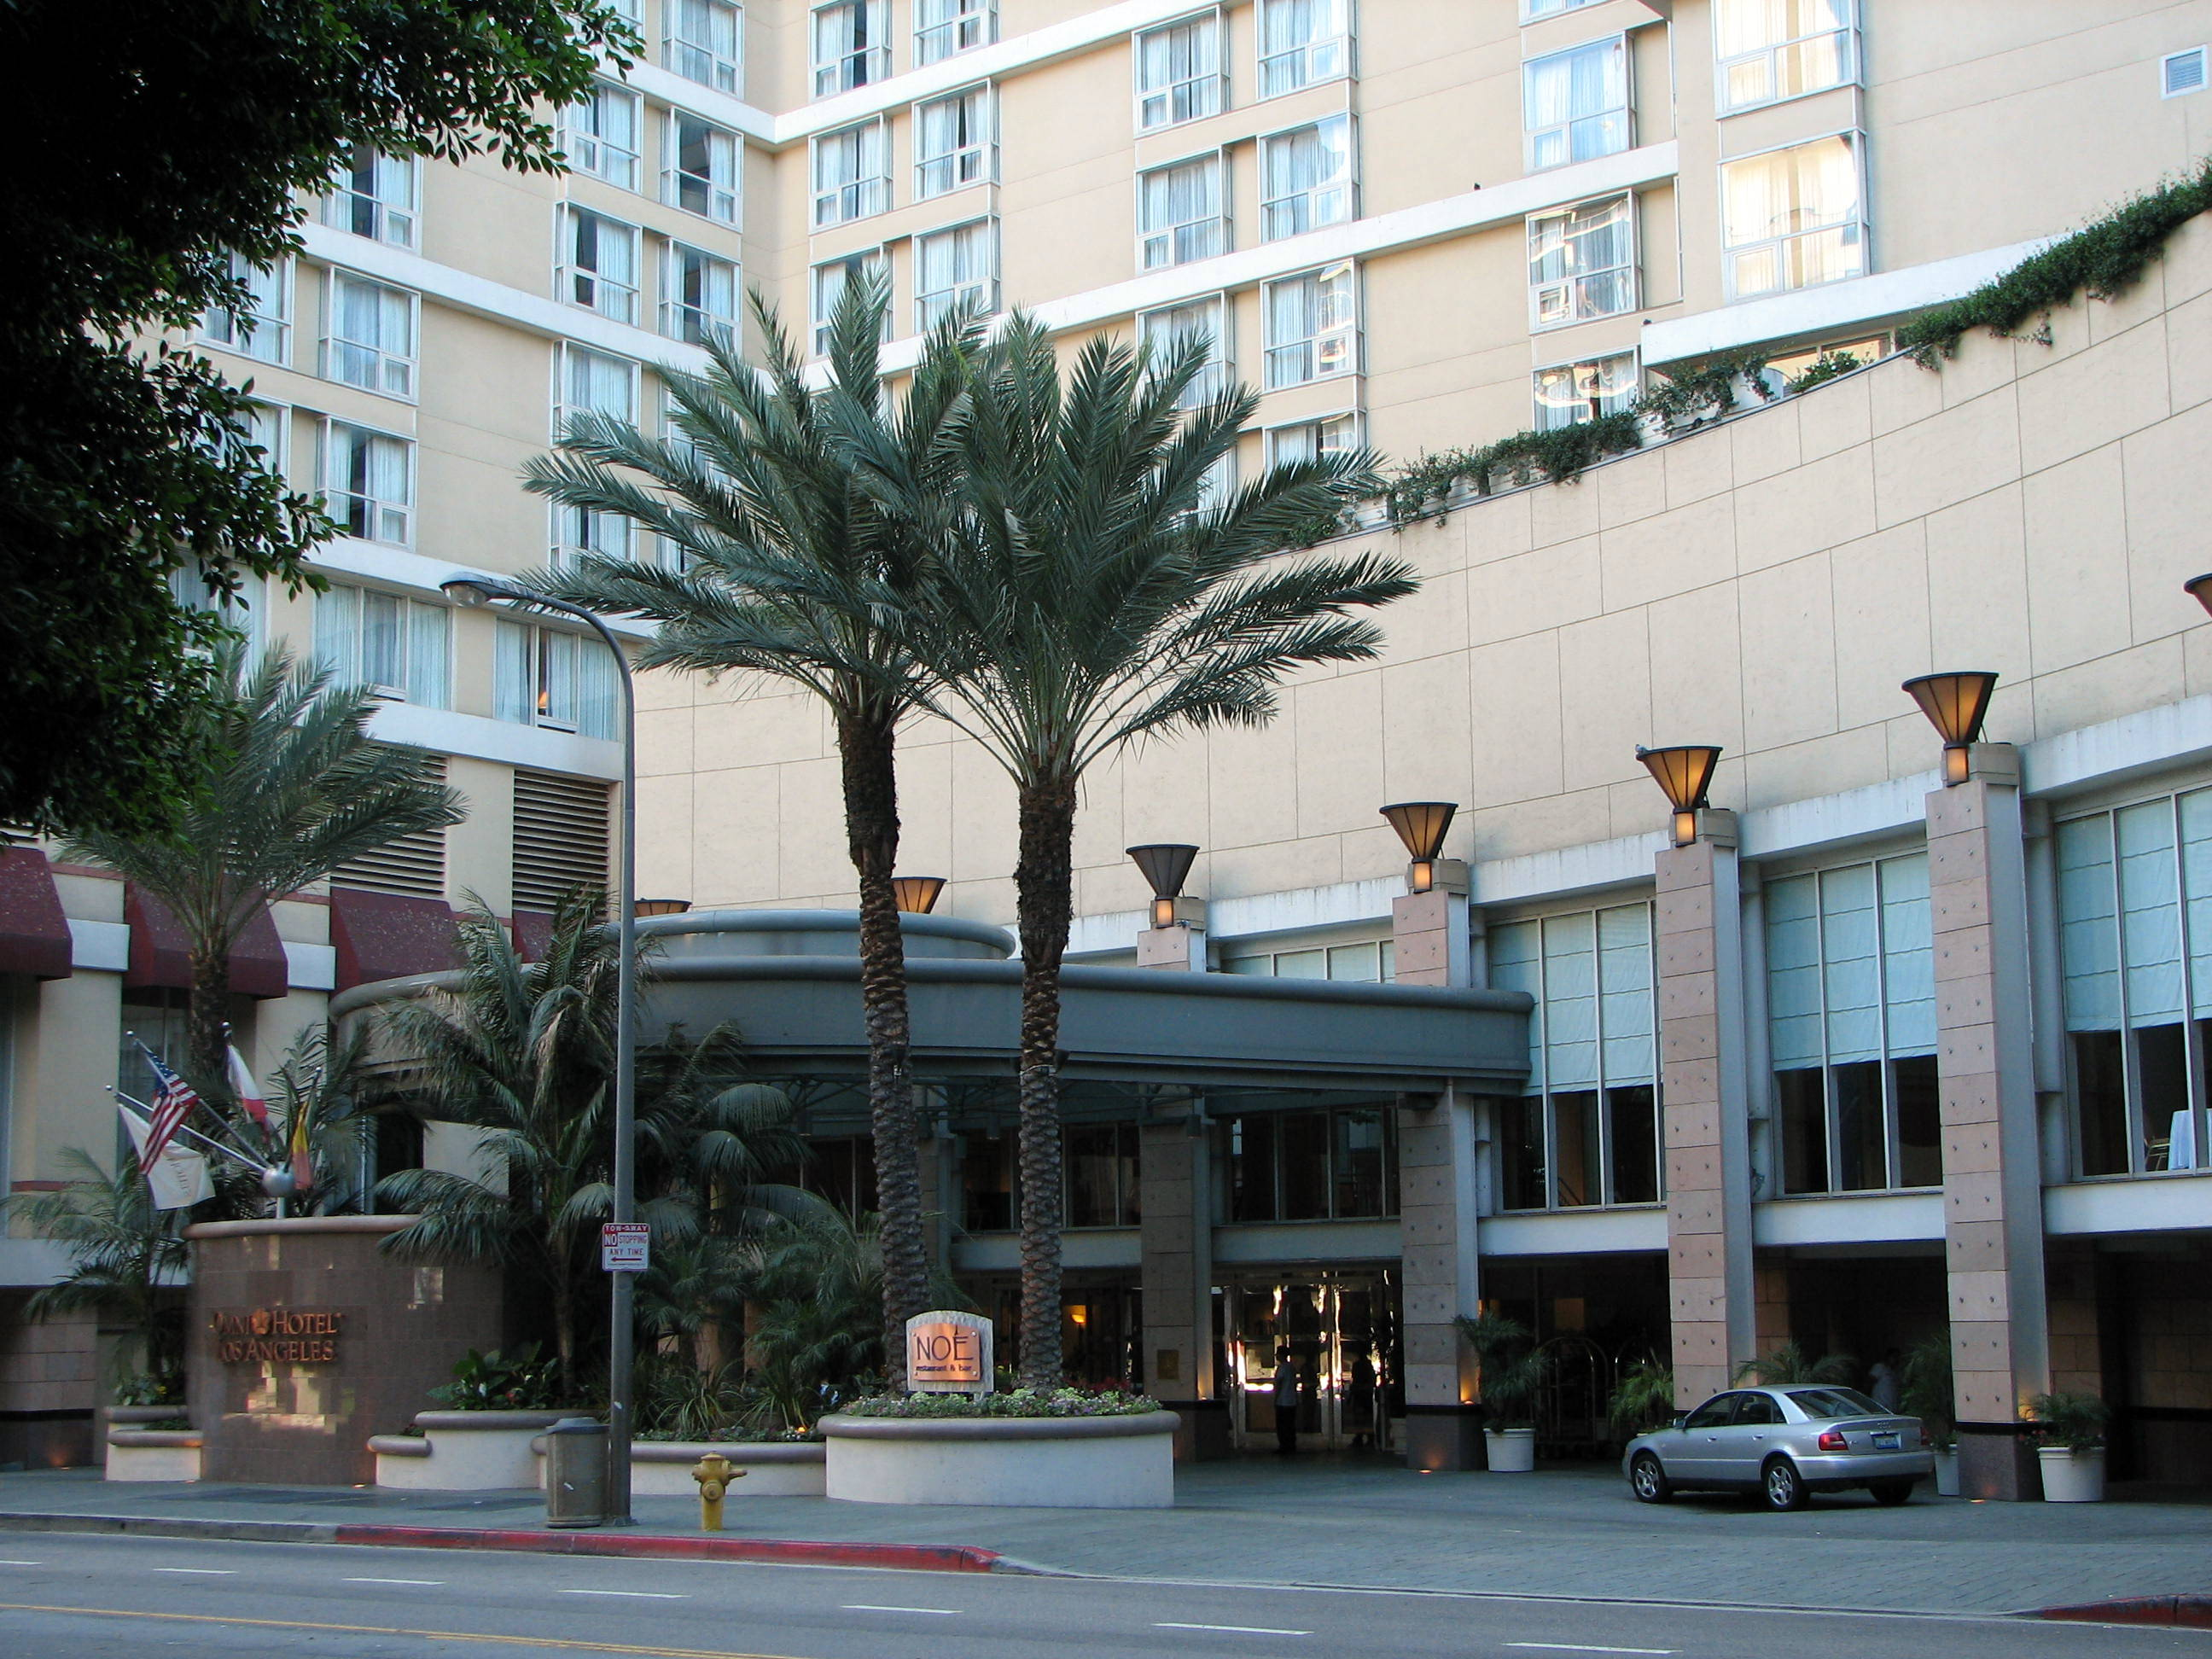 Omni Hotel Los Angeles Room Rates